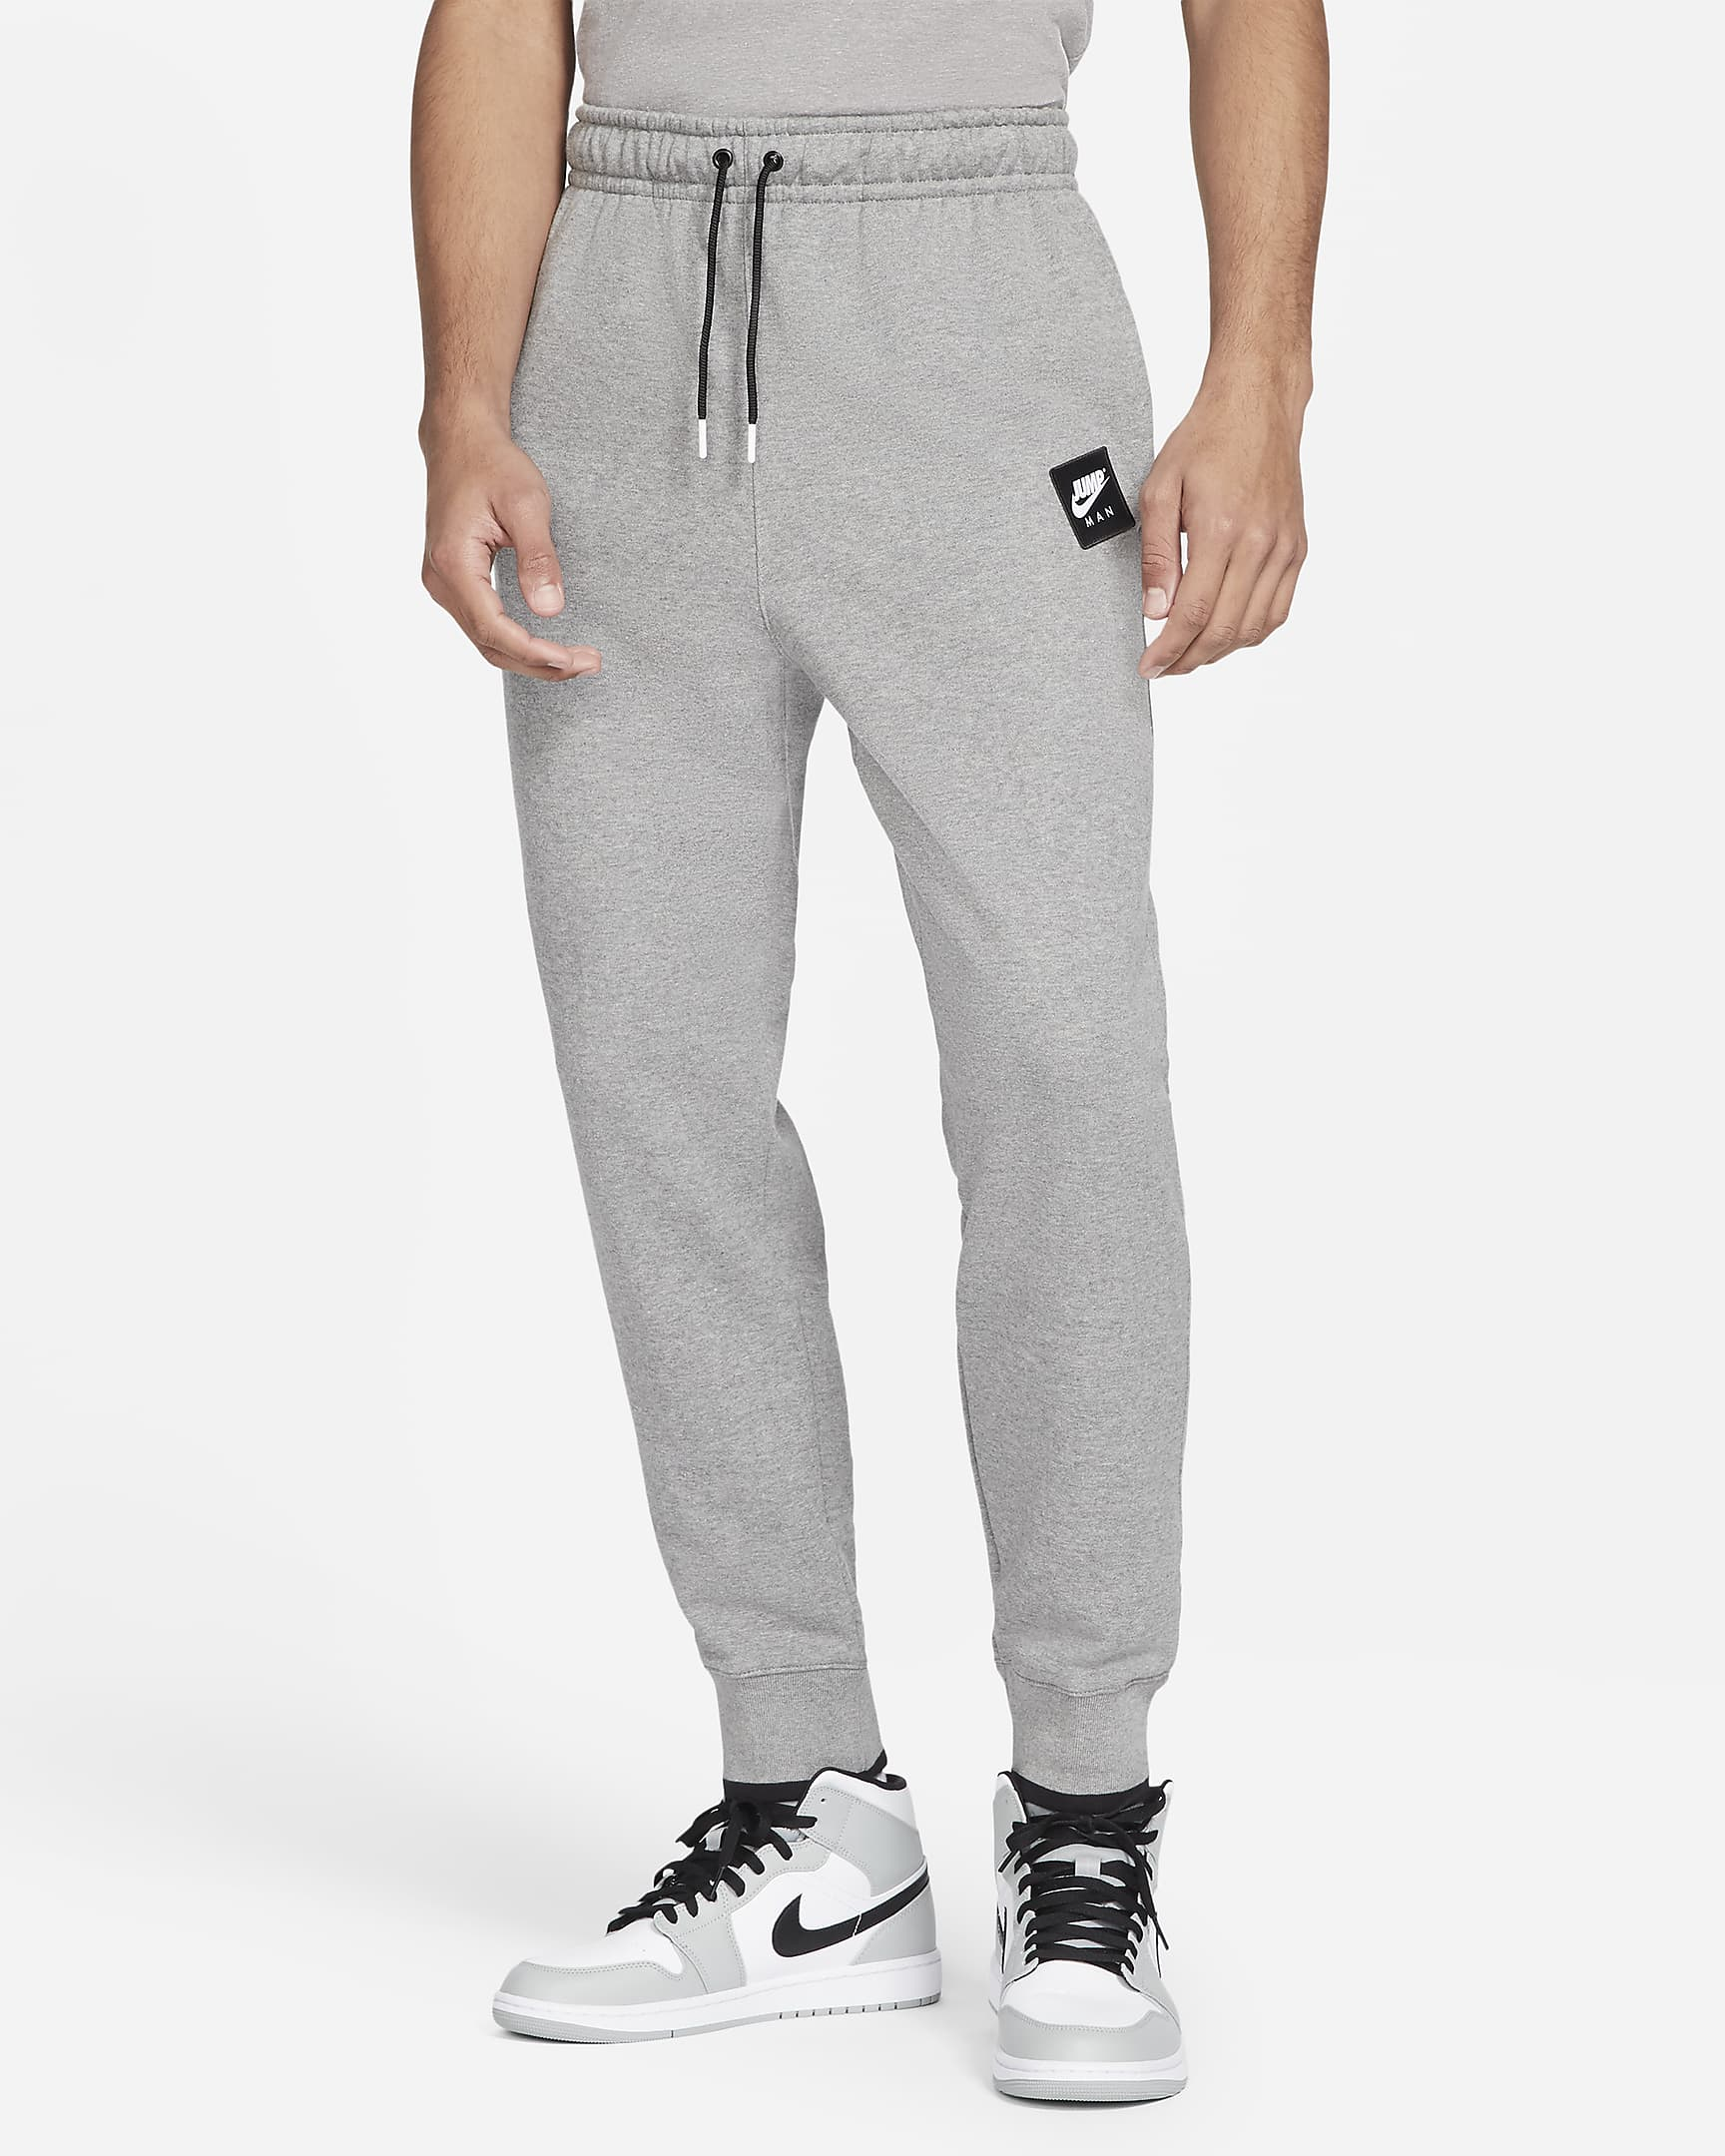 jordan-jumpman-classics-mens-fleece-pants-8GqjNg